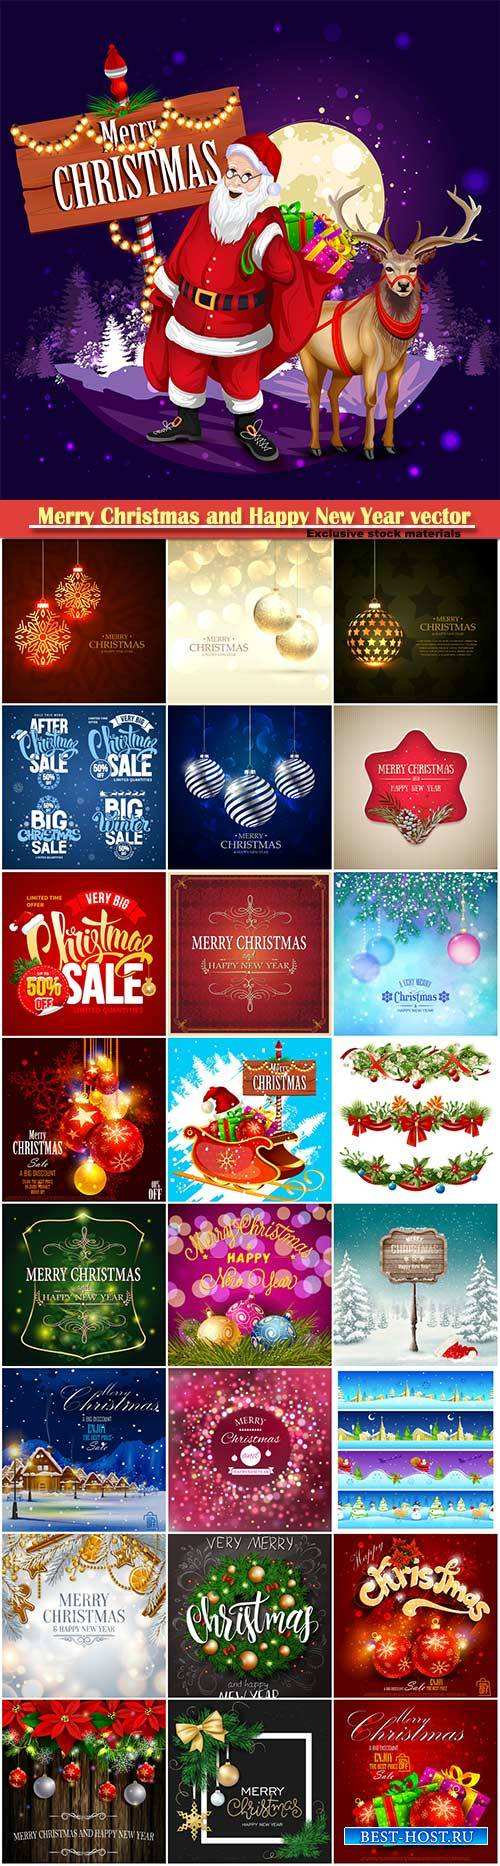 Merry Christmas and Happy New Year vector design # 31